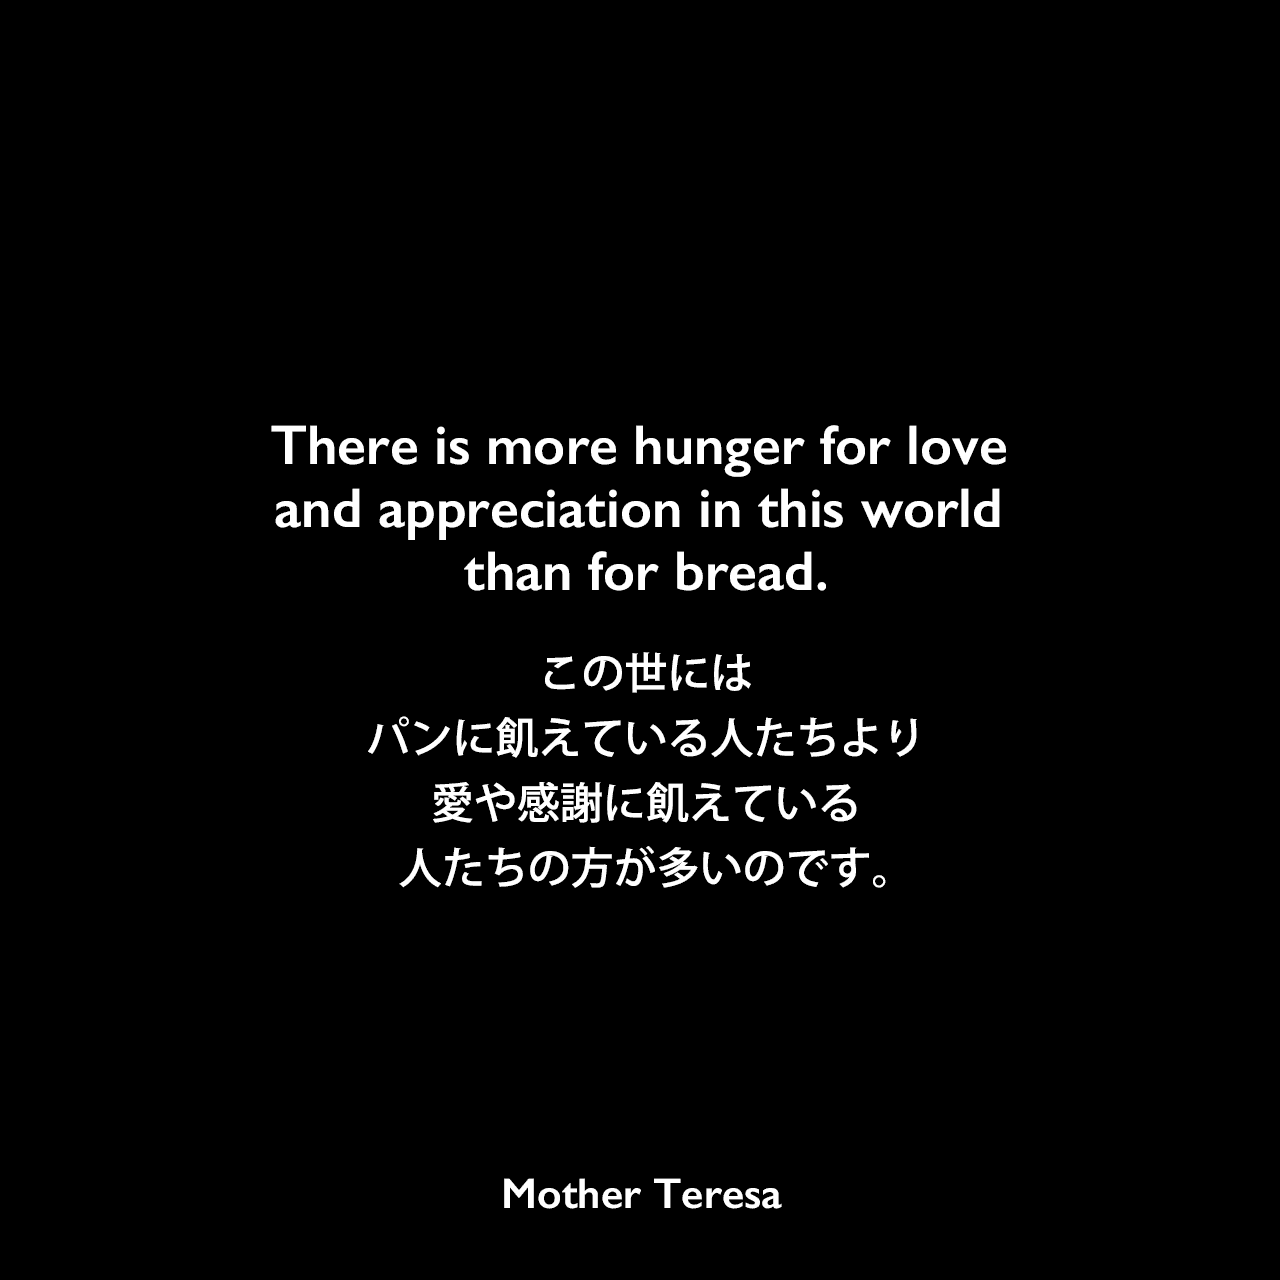 There is more hunger for love and appreciation in this world than for bread.この世にはパンに飢えている人たちより、愛や感謝に飢えている人たちの方が多いのです。Mother Teresa